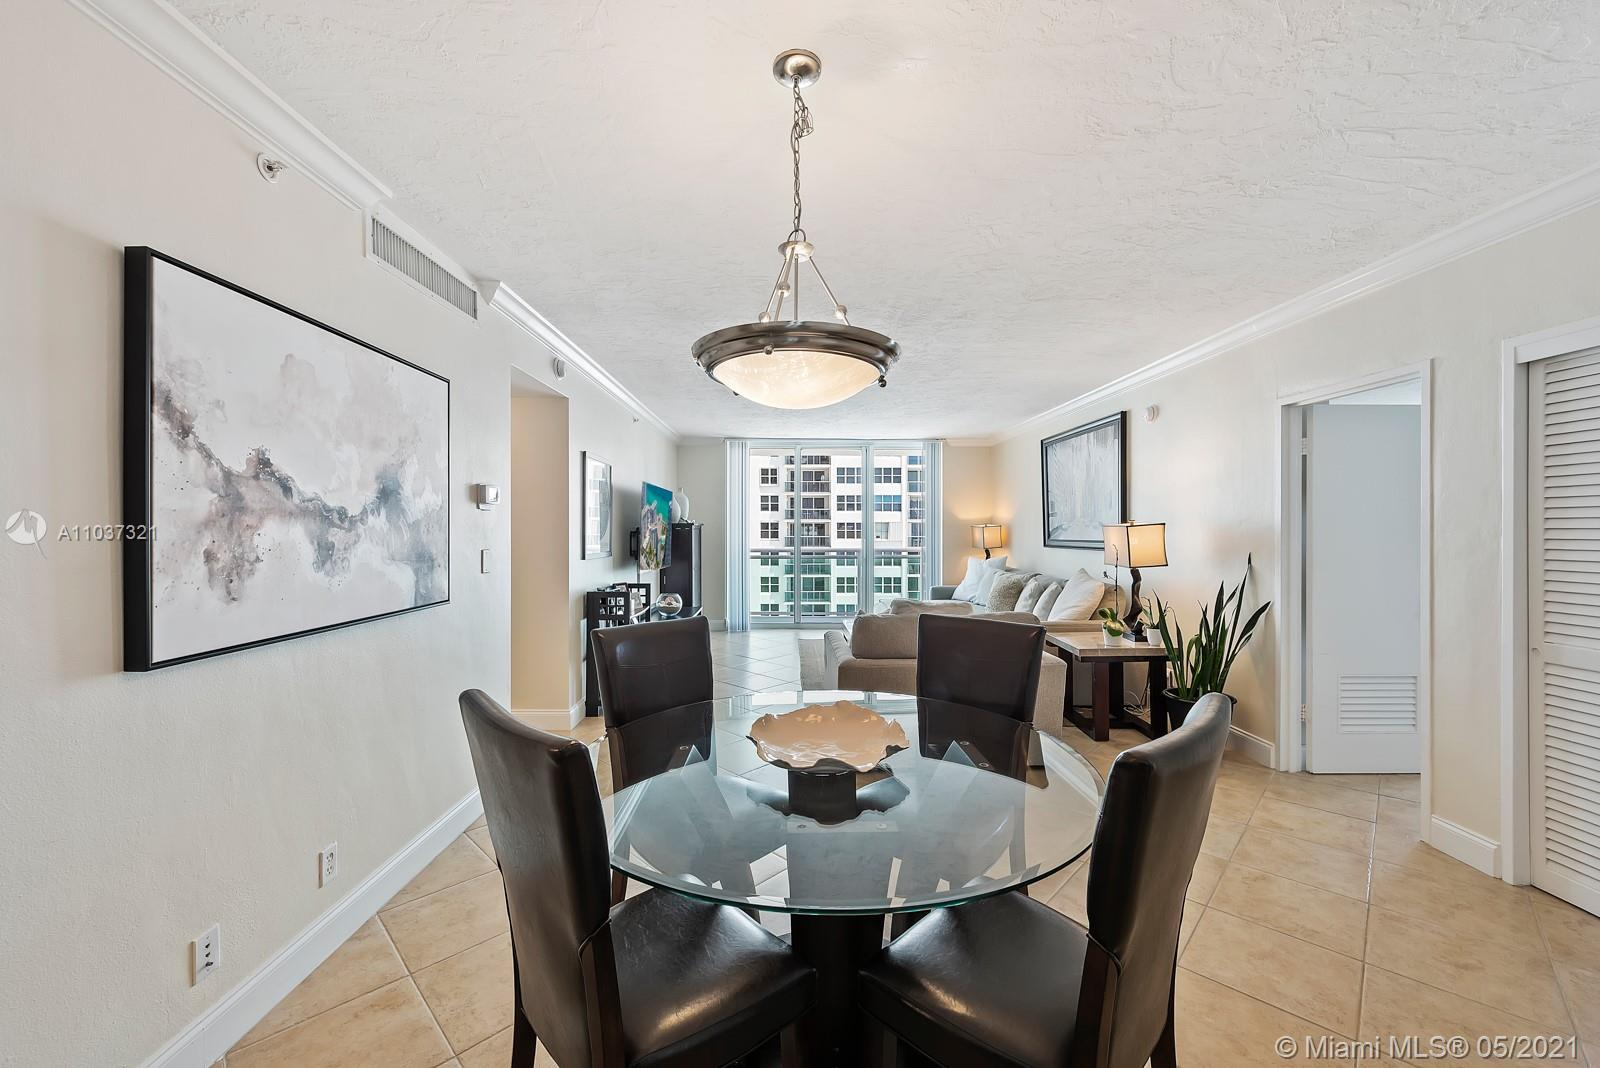 Beachfront living at the Residences at Hollywood Beach! Corner residence #709 features 2 beds, 2 ful